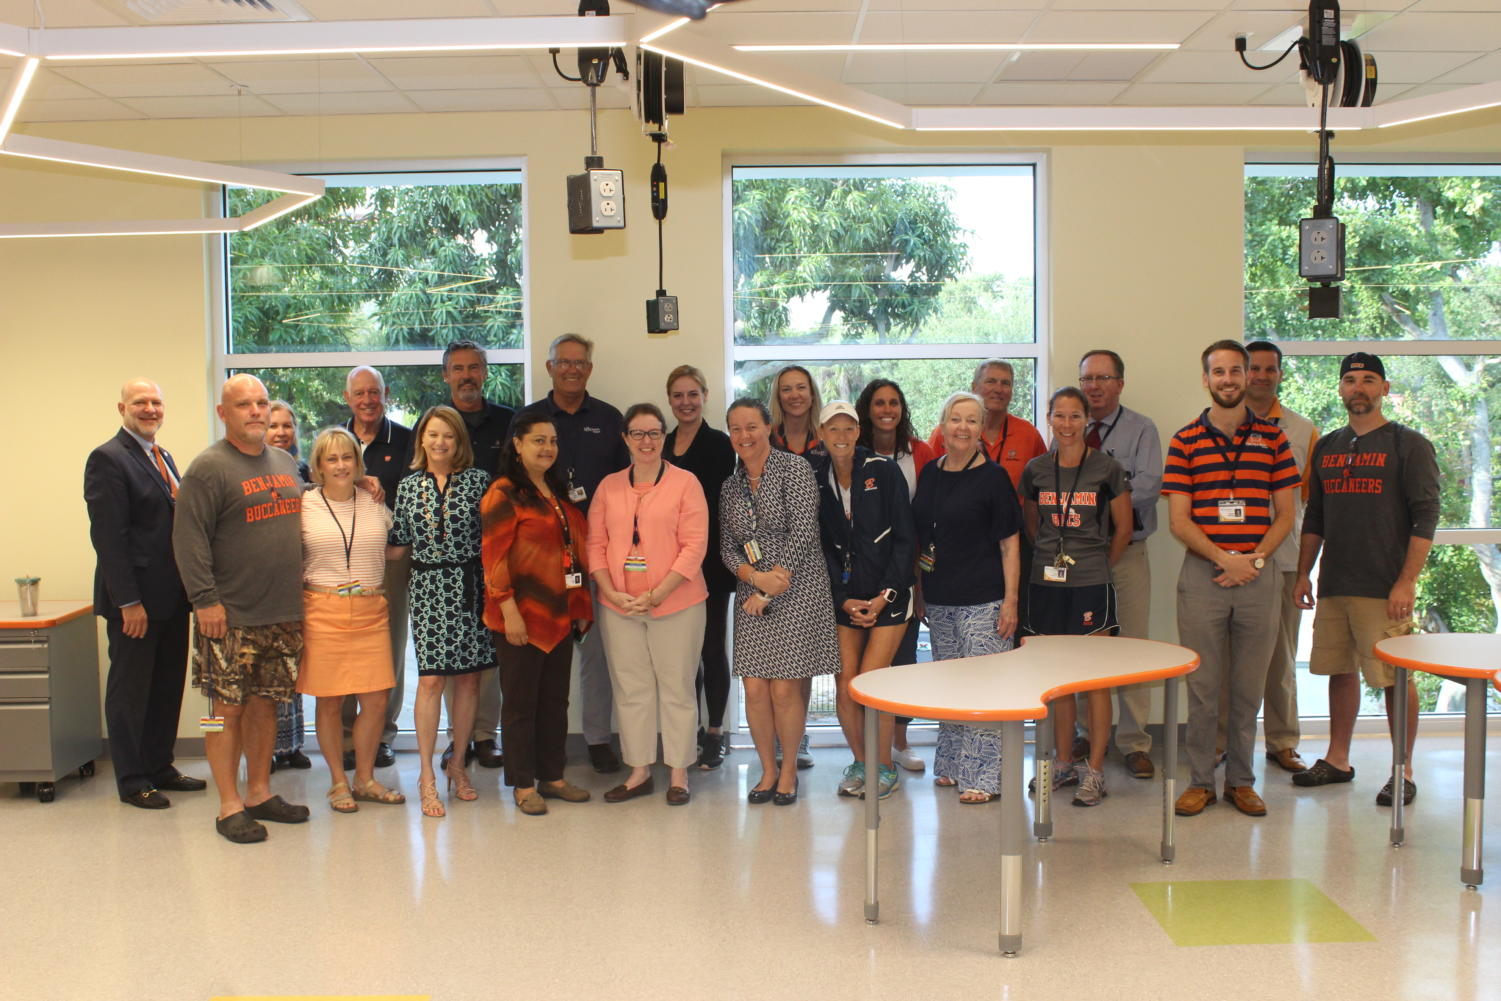 All of the middle school teachers pose for a picture in the newly built Maglio Family STEM Center on May 1, 2019.